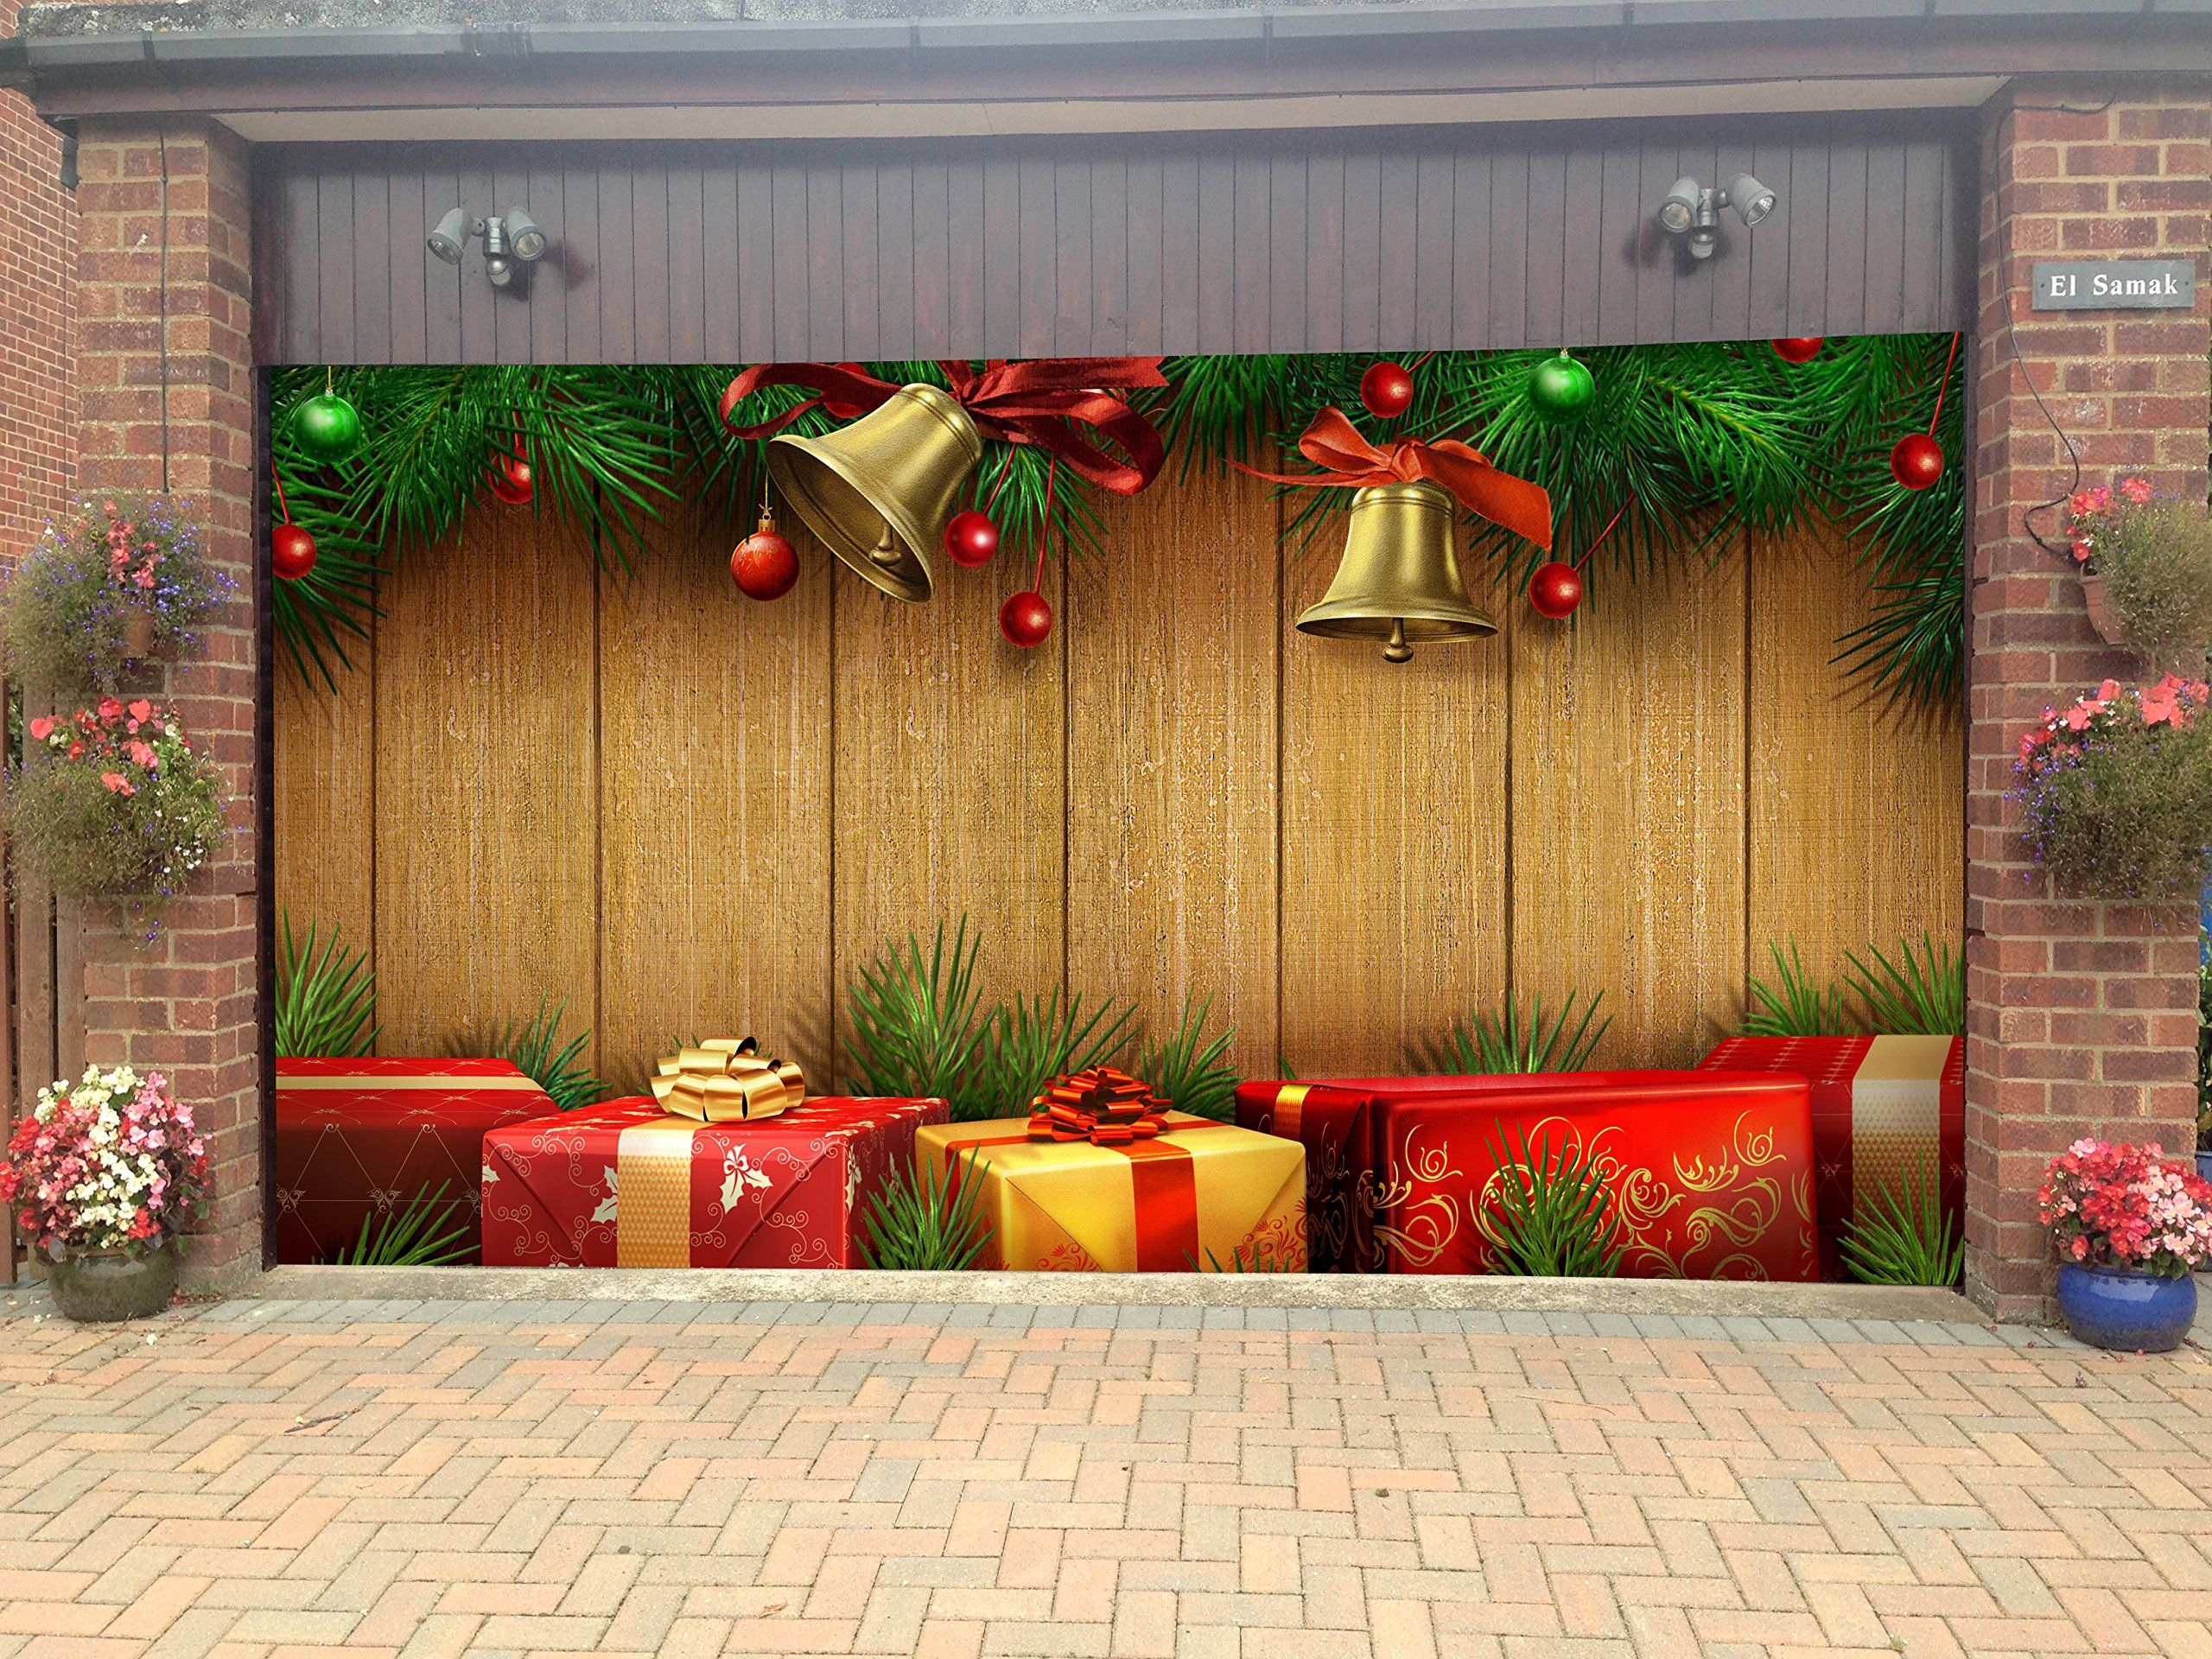 Merry Christmas Decorations Outdoor : Merry christmas garage door covers d banners holiday tree